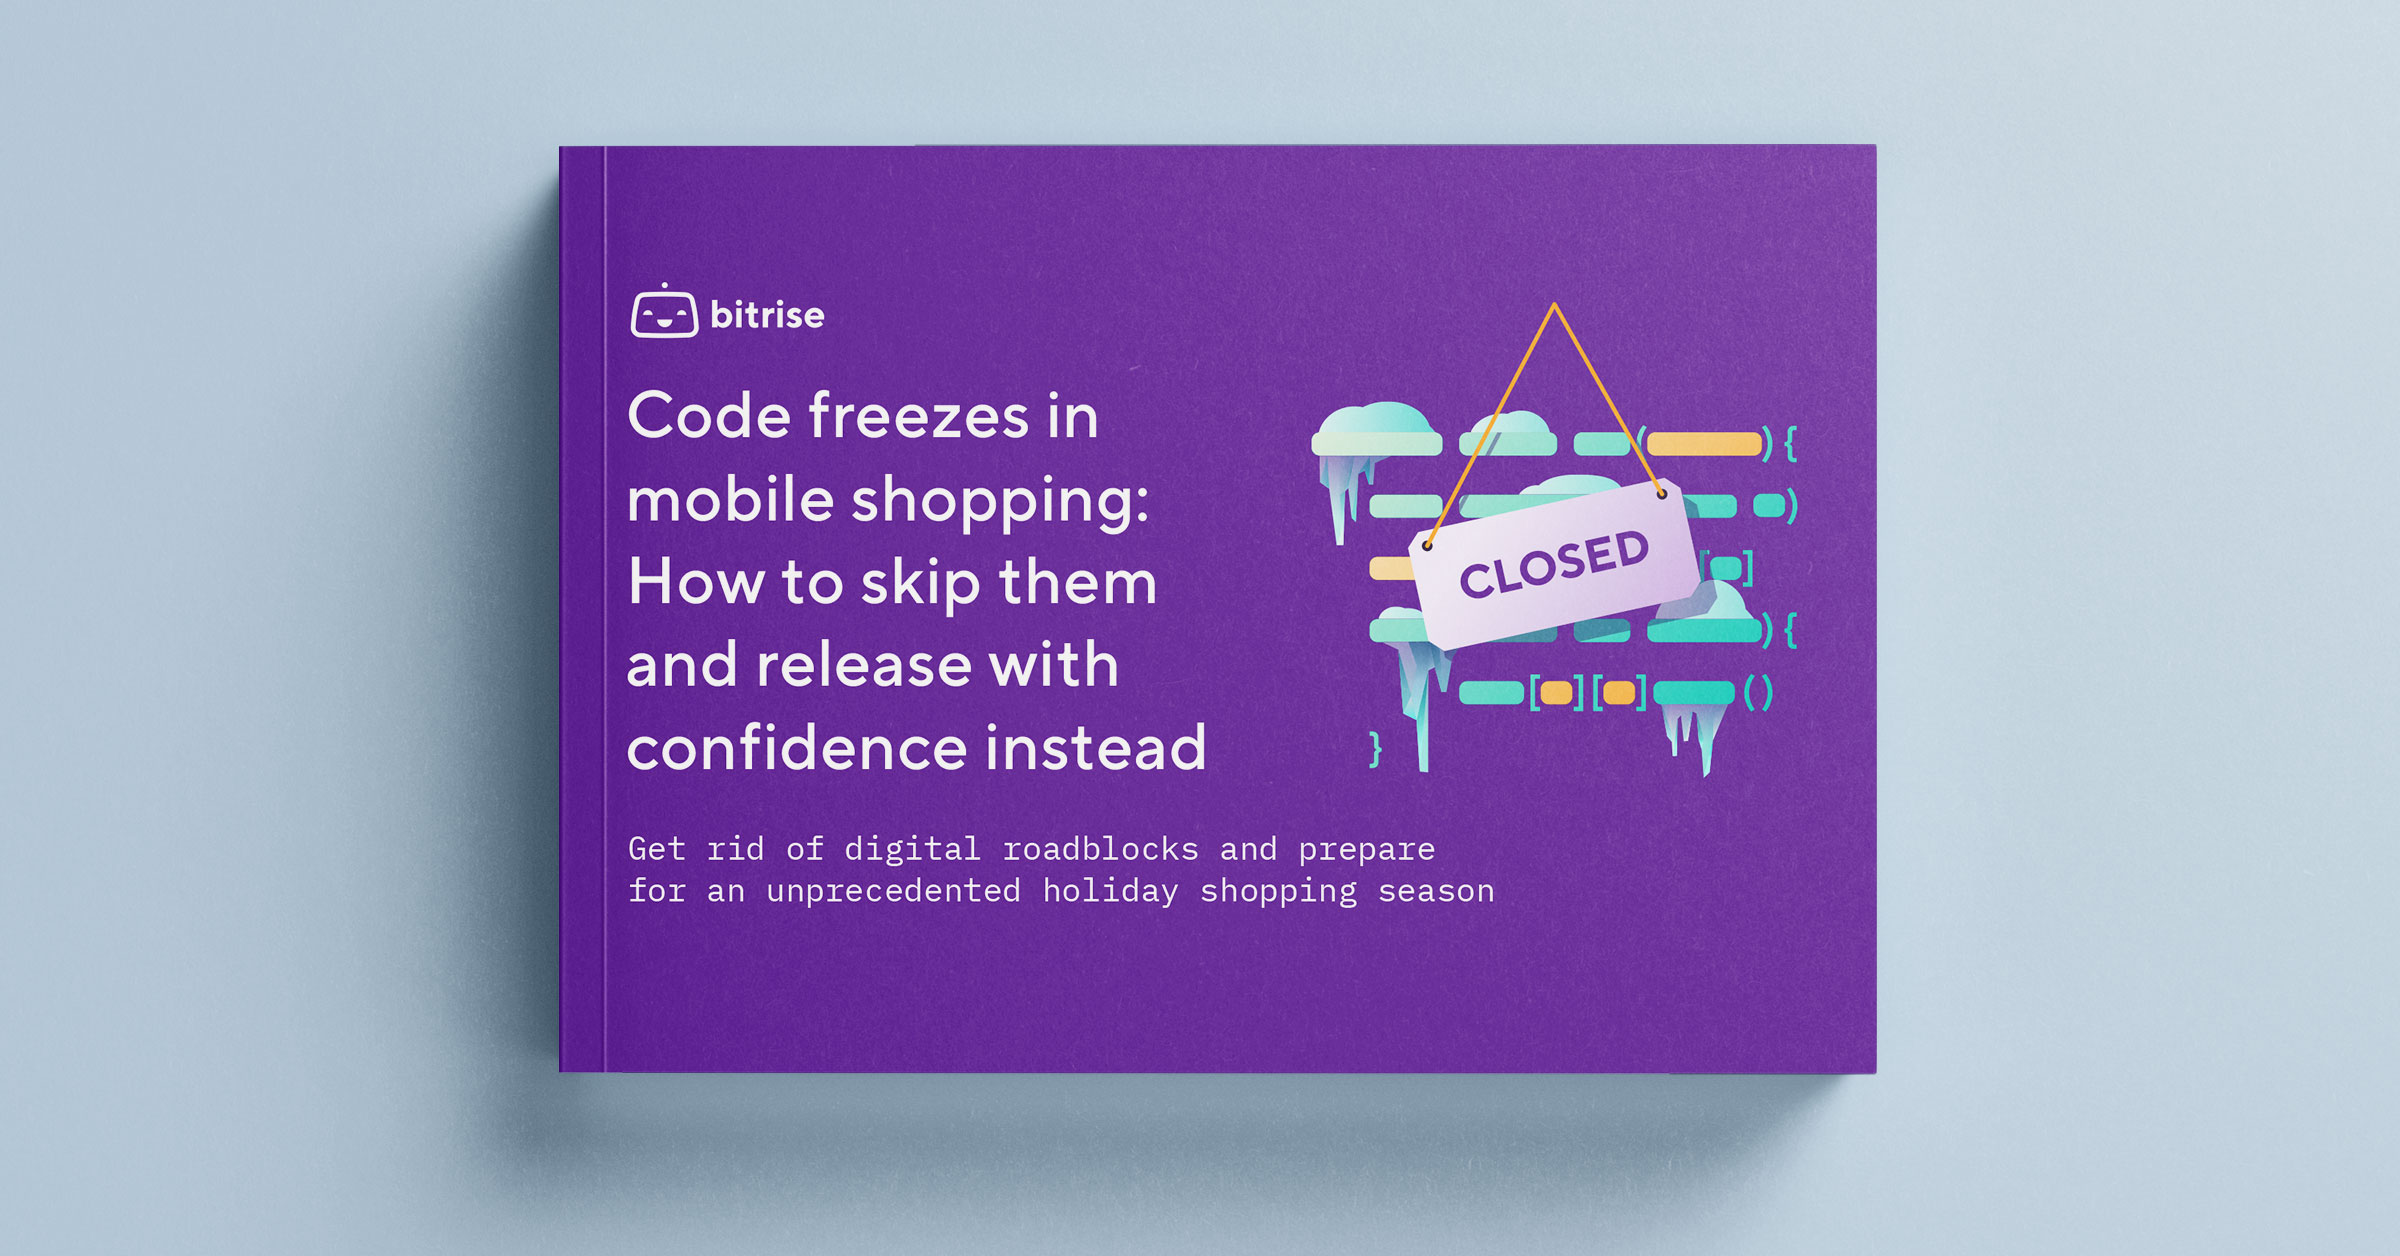 Code freezes in mobile shopping — How to skip them and release with confidence instead